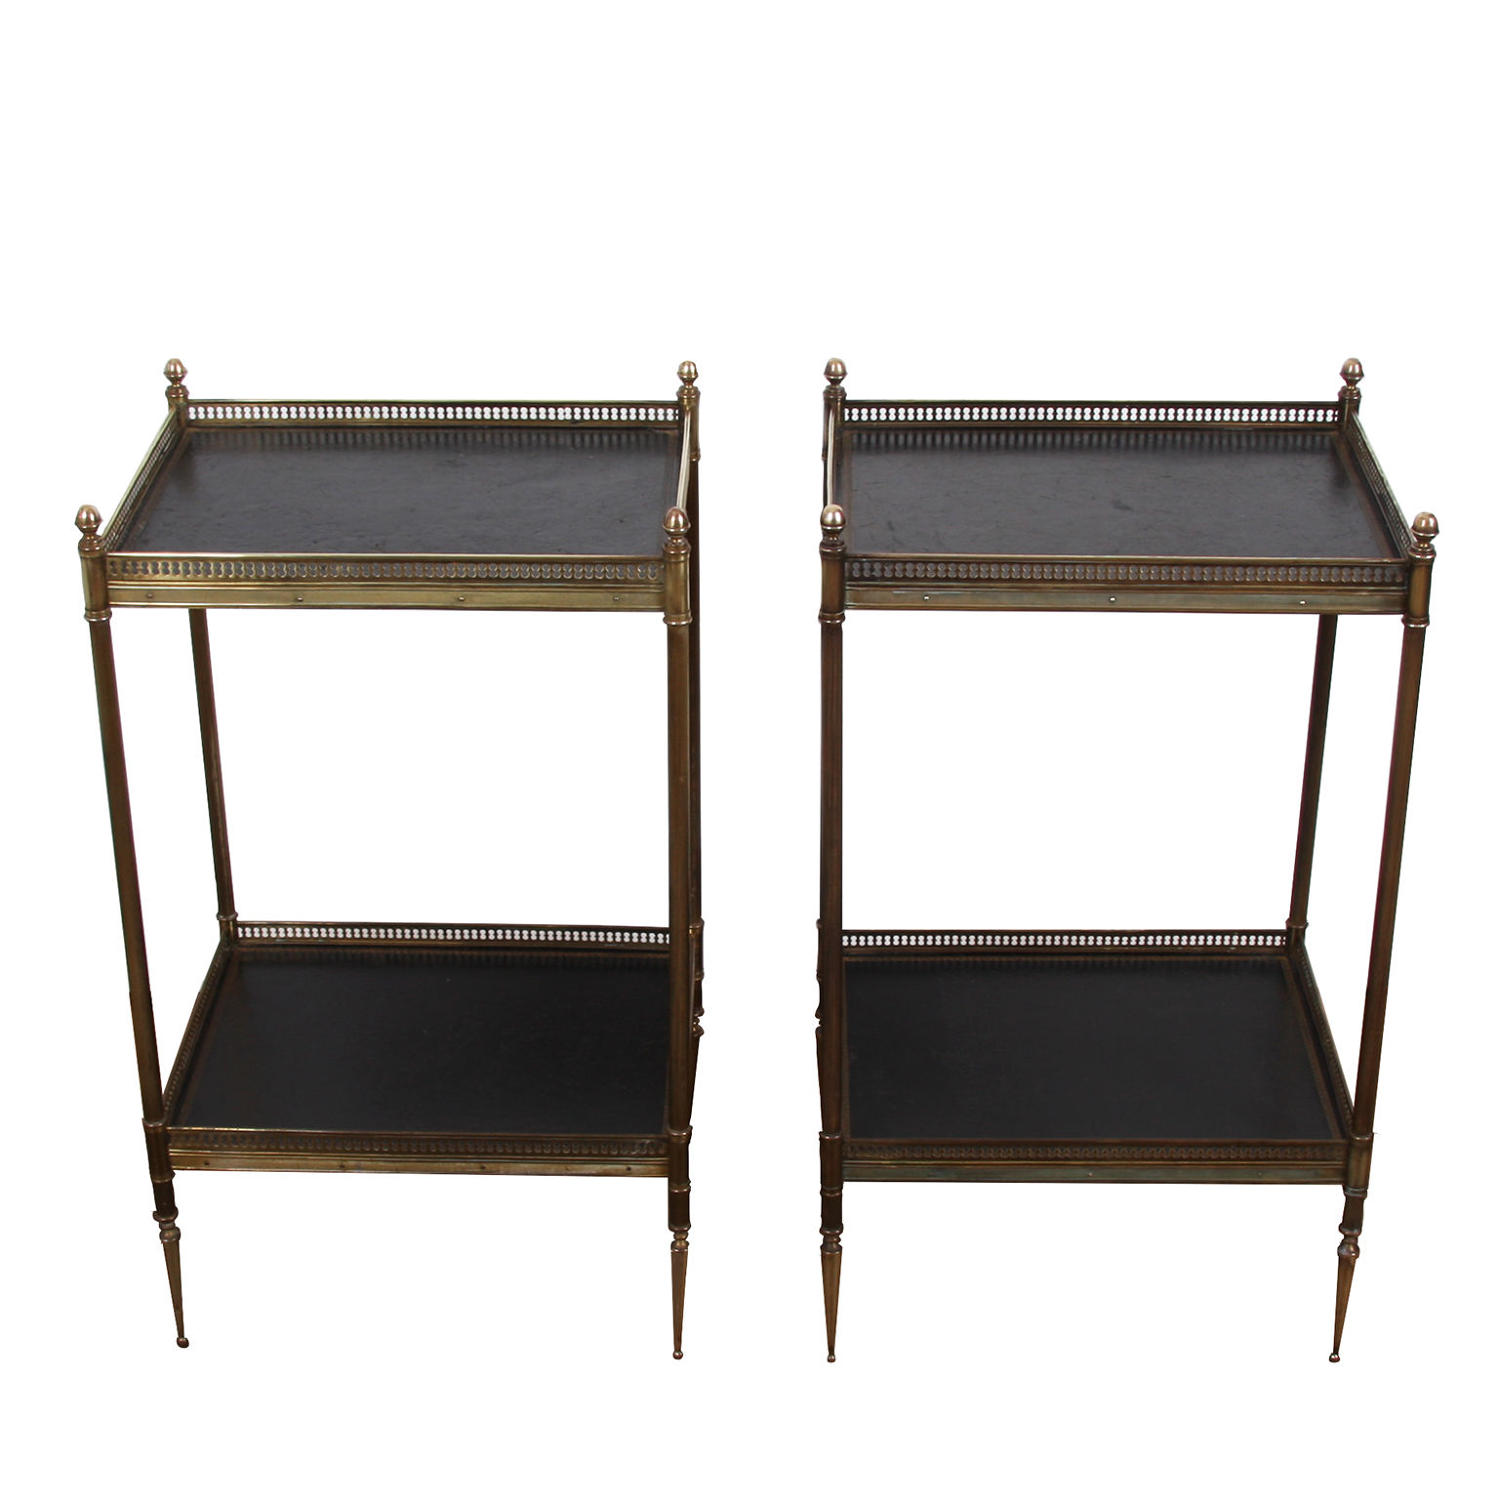 Pair of Two Tier Leather and Brass Side Tables